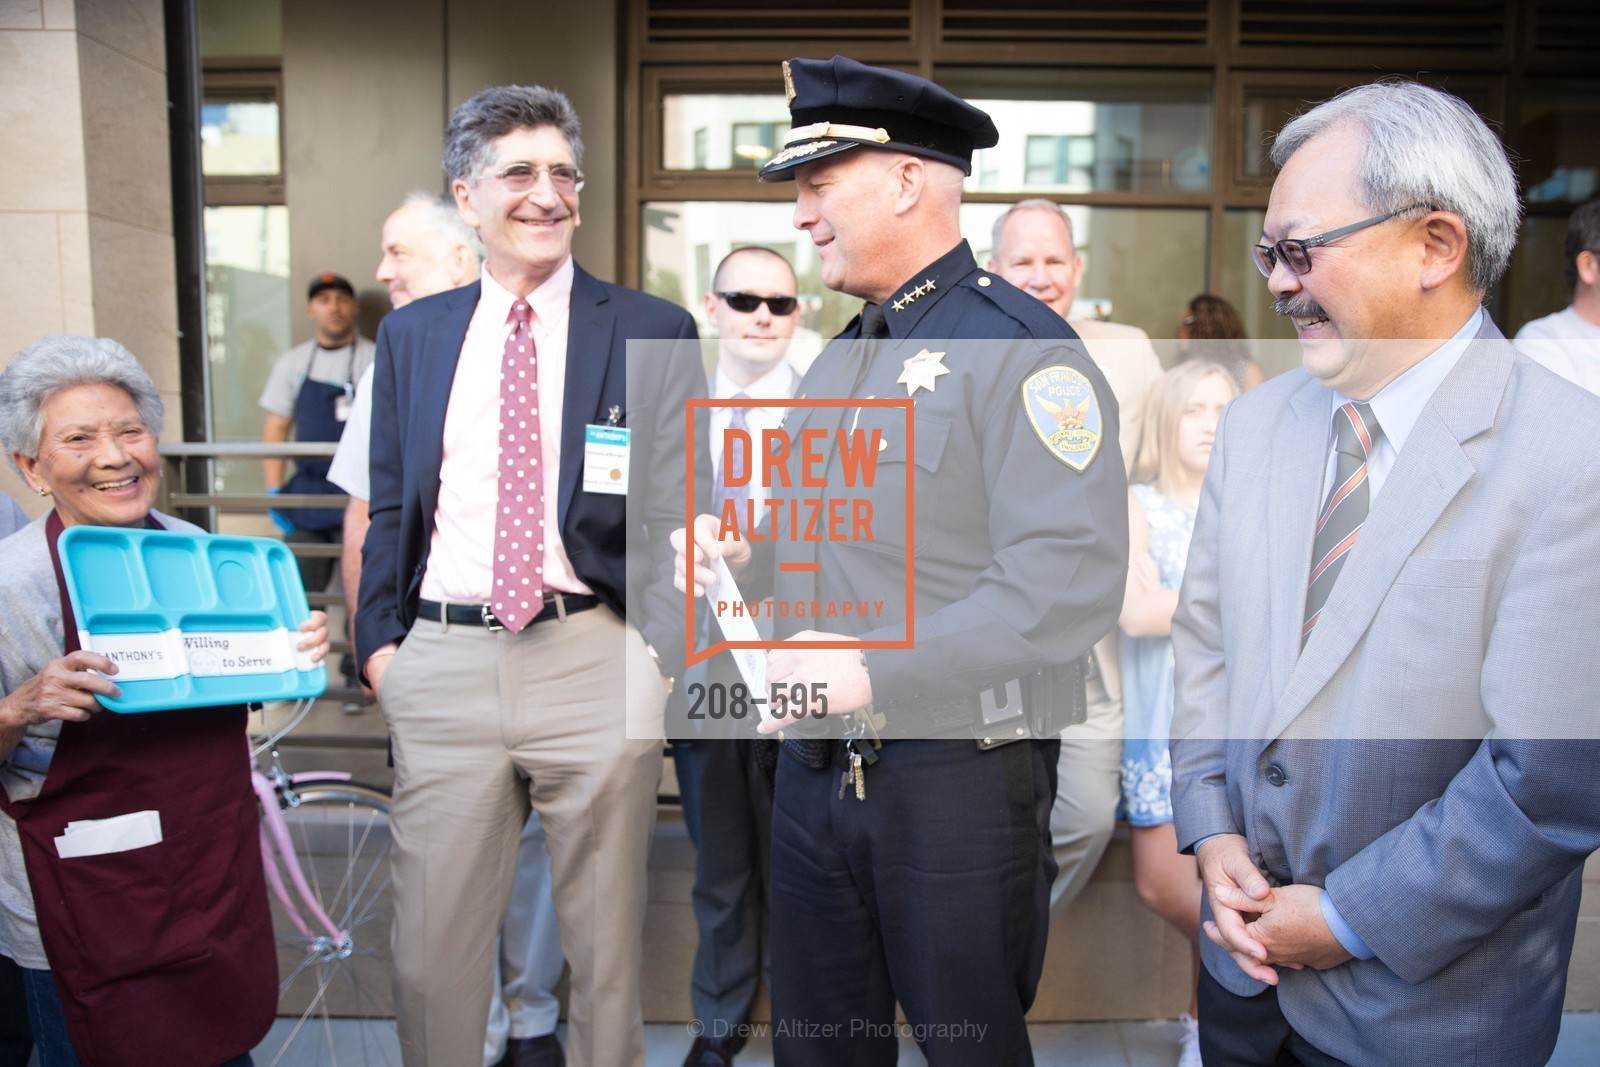 Carmelita Lozano, Dennis Aftergut, Greg Suhr, Mayor Ed Lee, ST. ANTHONY'S Dining Room Ribbon Cutting Ceremony, US, October 4th, 2014,Drew Altizer, Drew Altizer Photography, full-service agency, private events, San Francisco photographer, photographer california